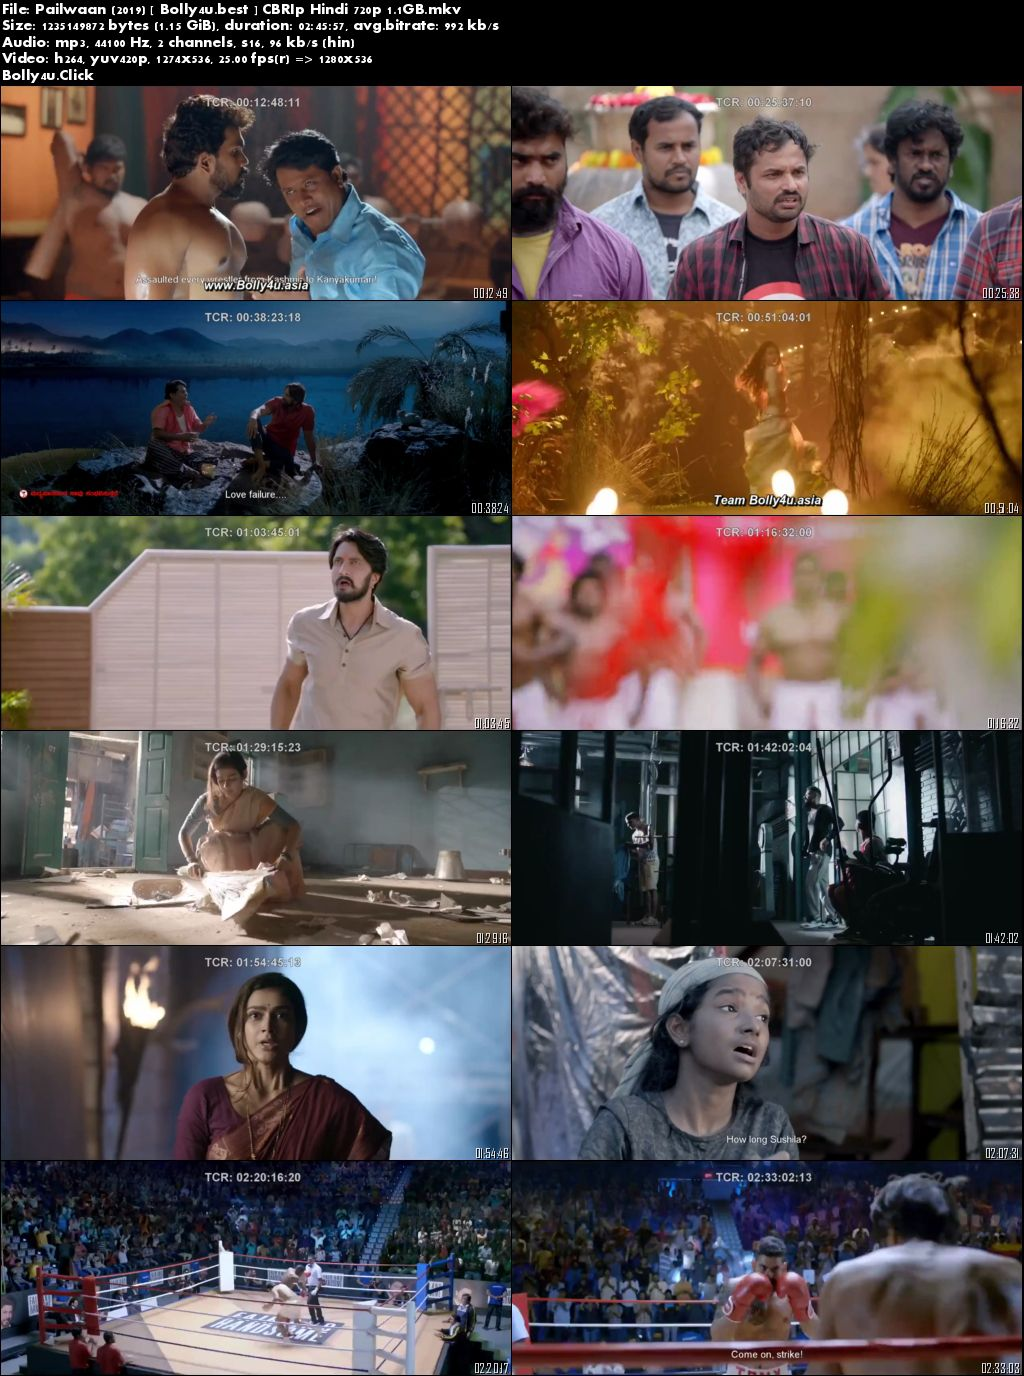 Pailwaan 2019 CBRip 500MB Full Hindi Movie Download 480p